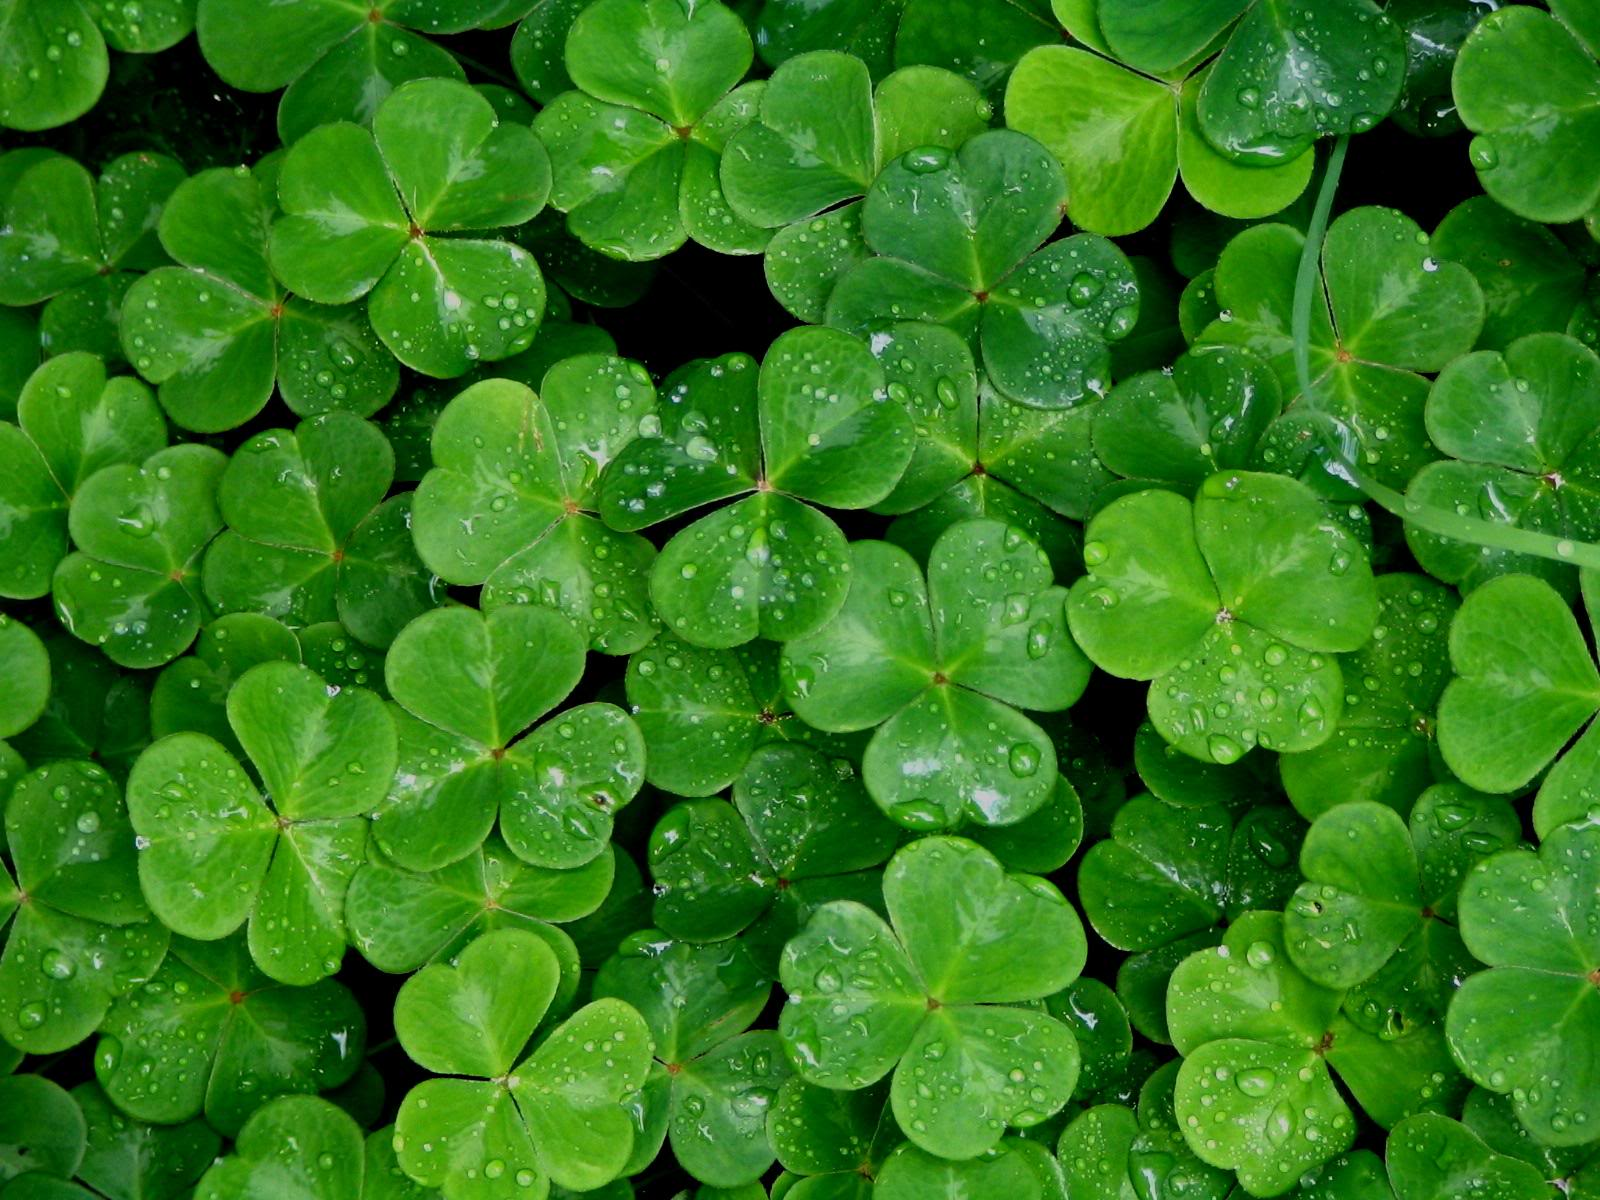 Shamrock Wallpaper HD wallpaper background 1600x1200